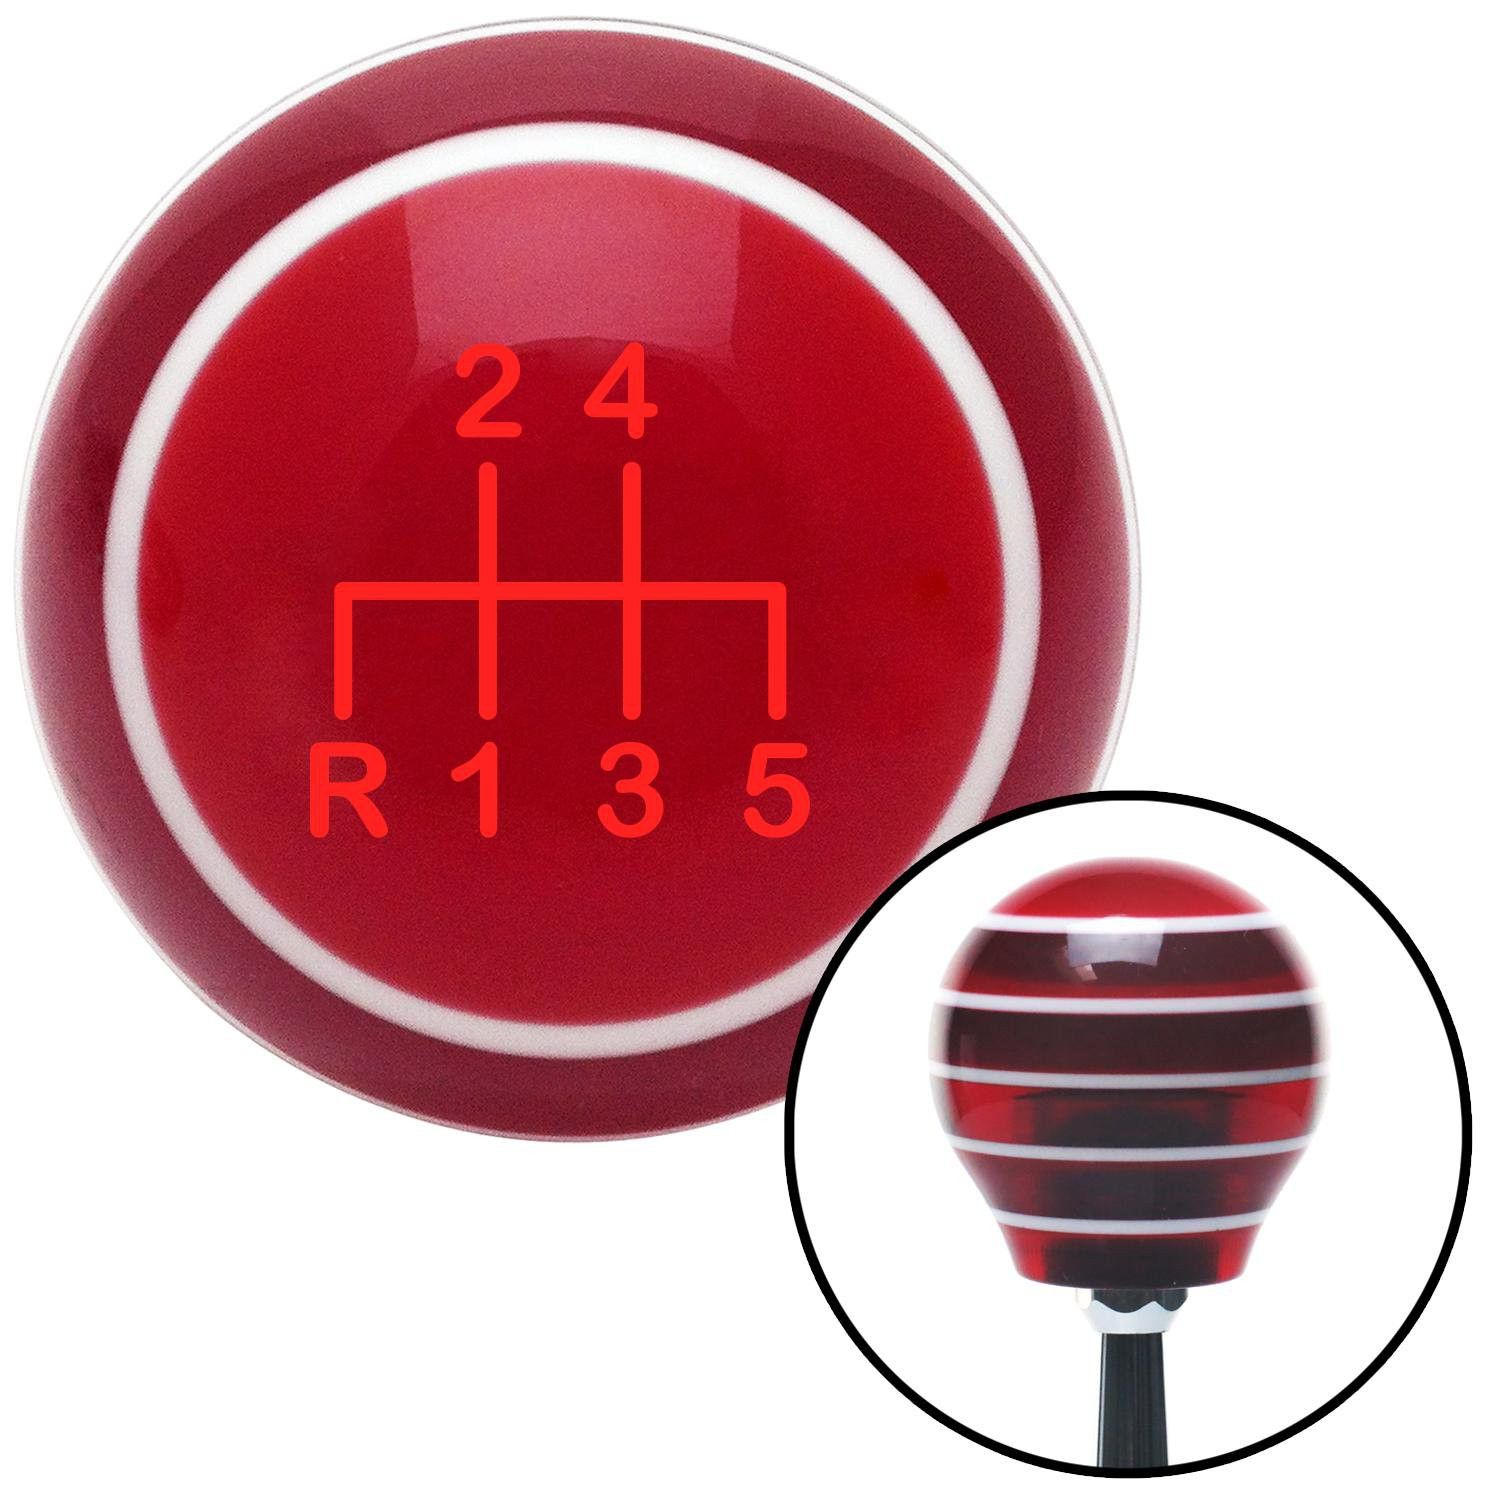 Red Shift Pattern 17n Red Stripe Shift Knob with M16 x 15 Insert - Give your interior the ultimate look. American Shifter's Elite(TM) series shift knobs are made from the highest quality components resulting in a superior feel on every shift. Each shift knob is designed and customized in the USA by skilled shift knob artisans who have a trained eye on every detail. American Shifters shift knobs offers an exclusive aluminum threaded insert designed to be screwed onto your shift arm. You…